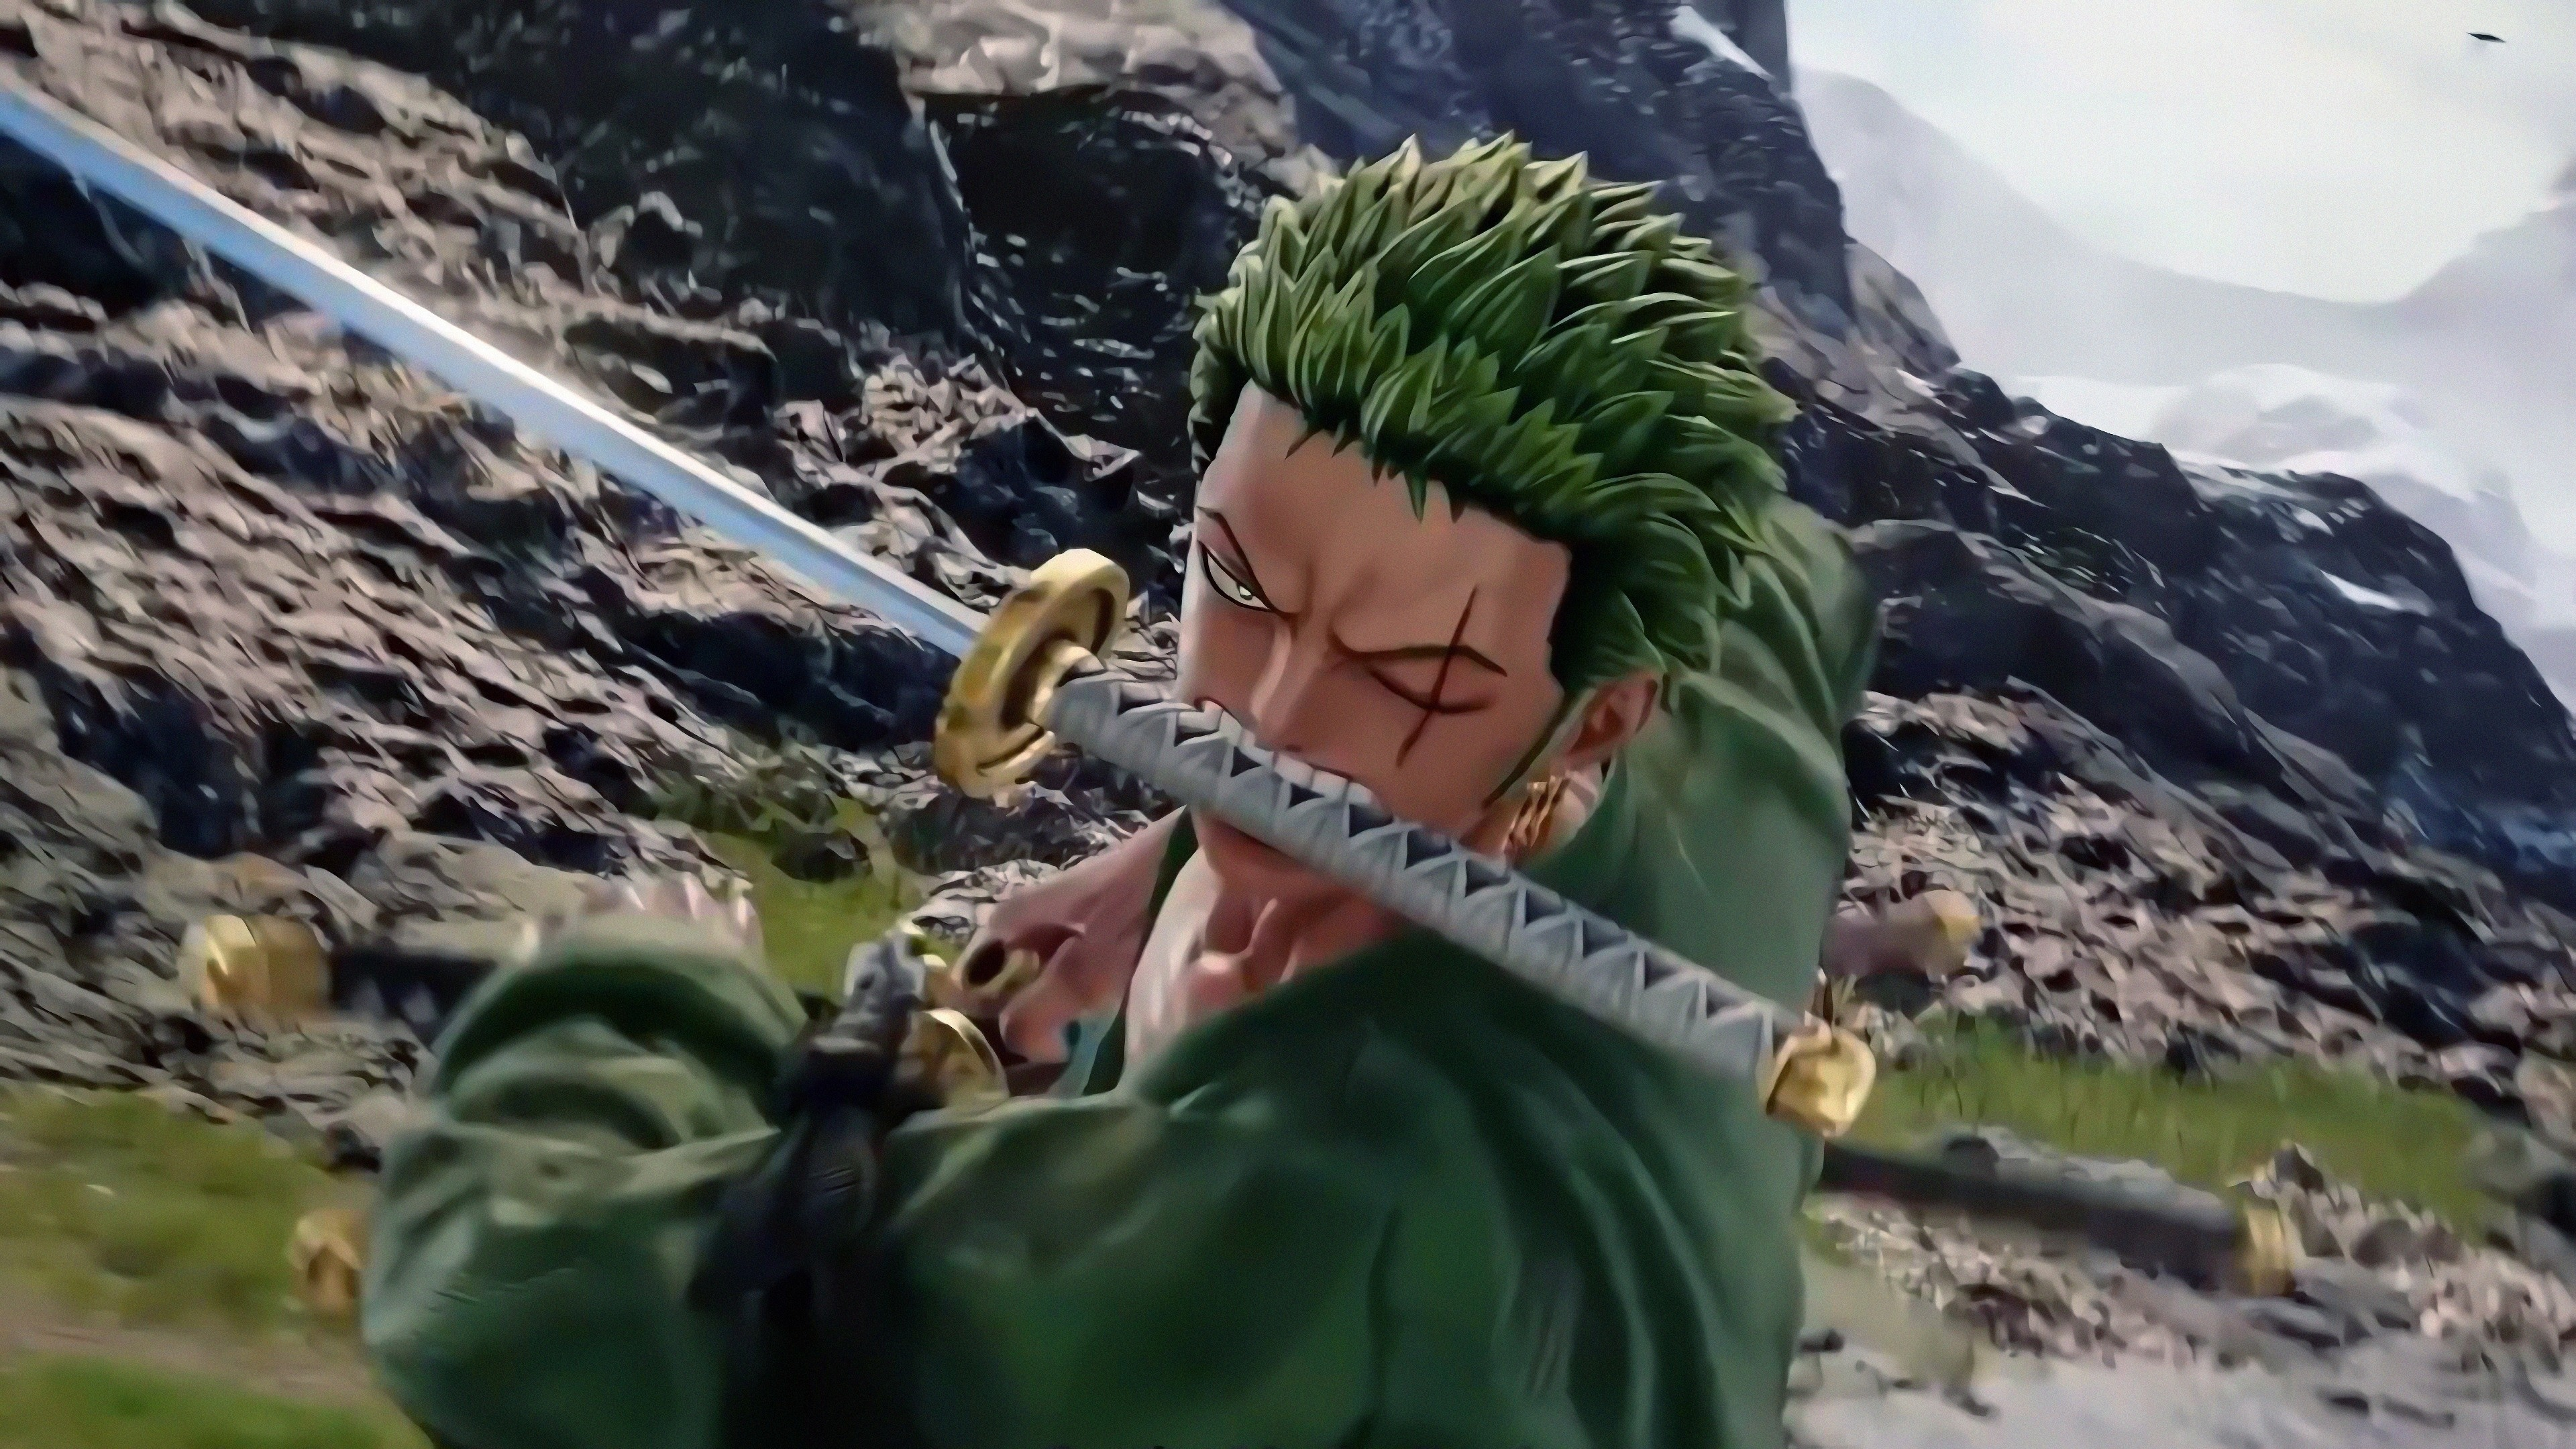 Download 3840x2160 Wallpaper Video Game Jump Force Roronoa